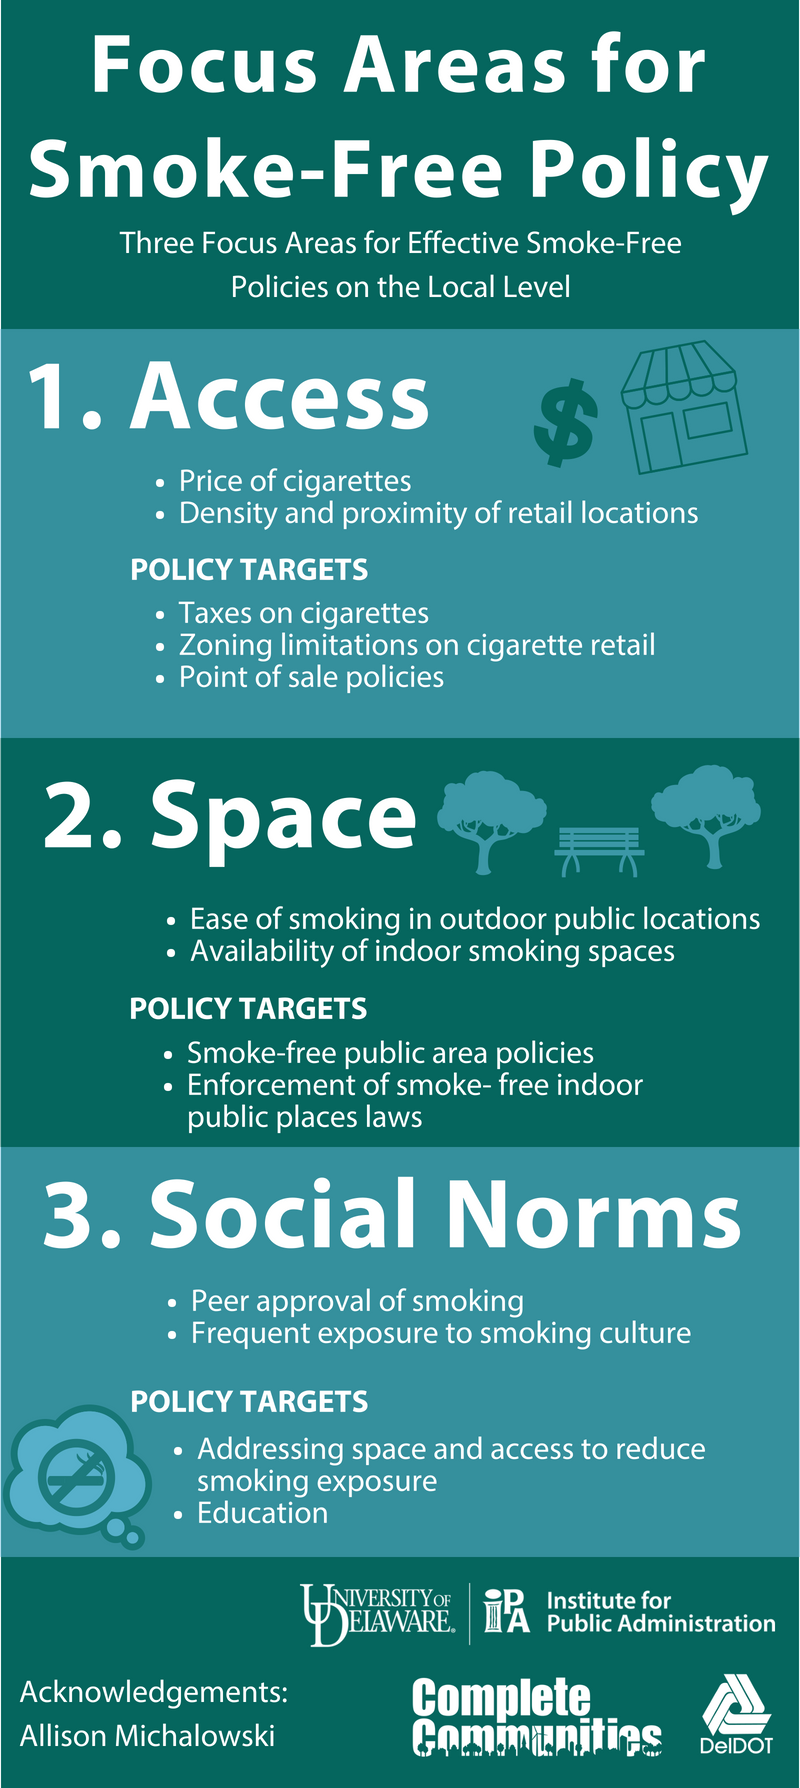 Three Focus Areas for Effective Smoke-Free Policies on the Local Level: 1. Limiting Access by increasing prices and limiting zoning for retail, 2. Restricting the locations where smoking is acceptable, 3. Changing the culture and social norms so that smoking is not desirable.